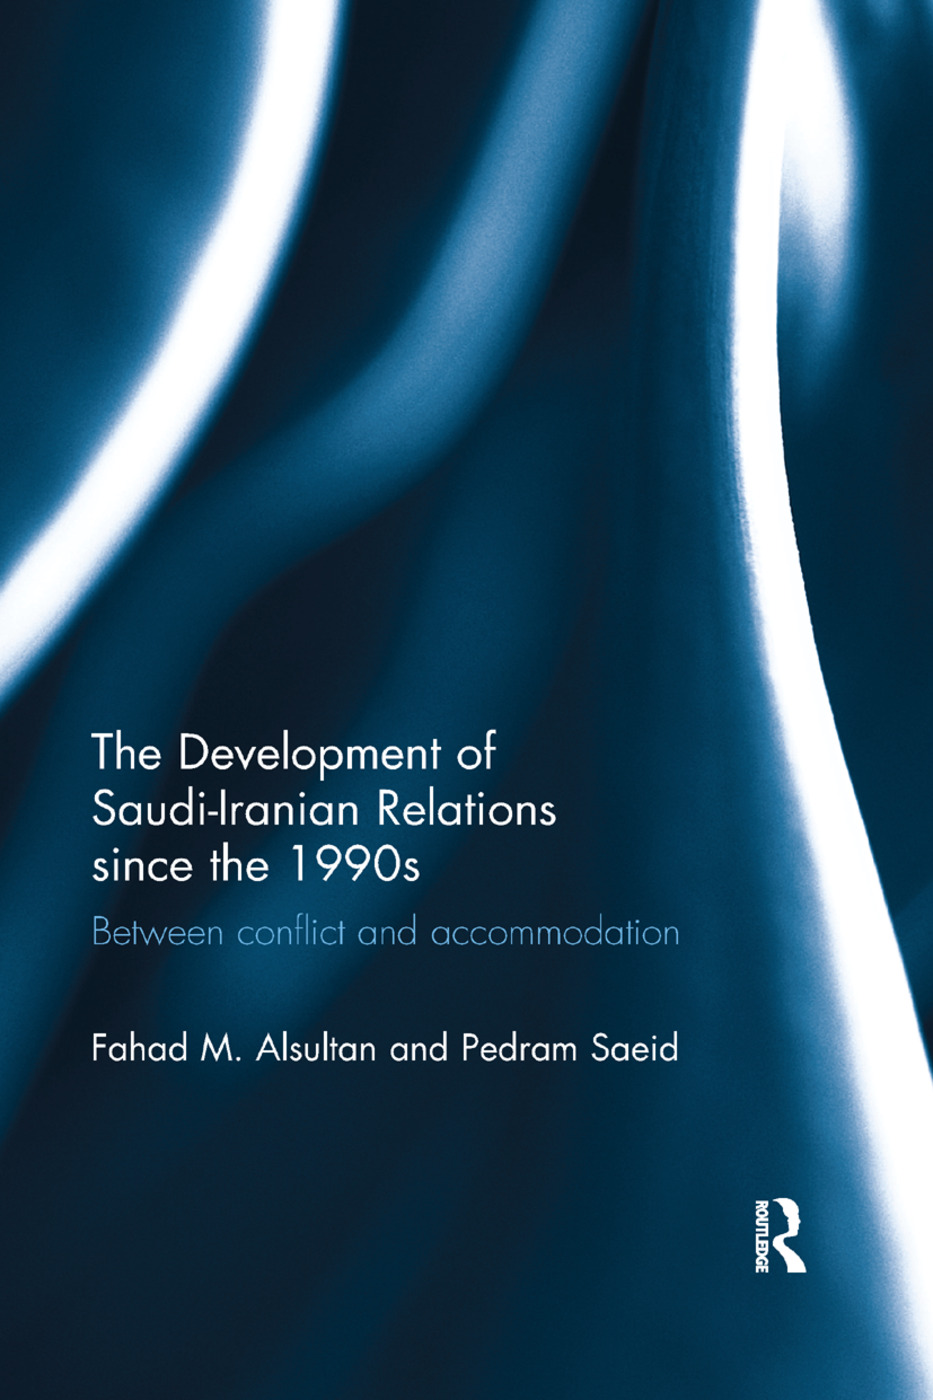 The Development of Saudi-Iranian Relations since the 1990s